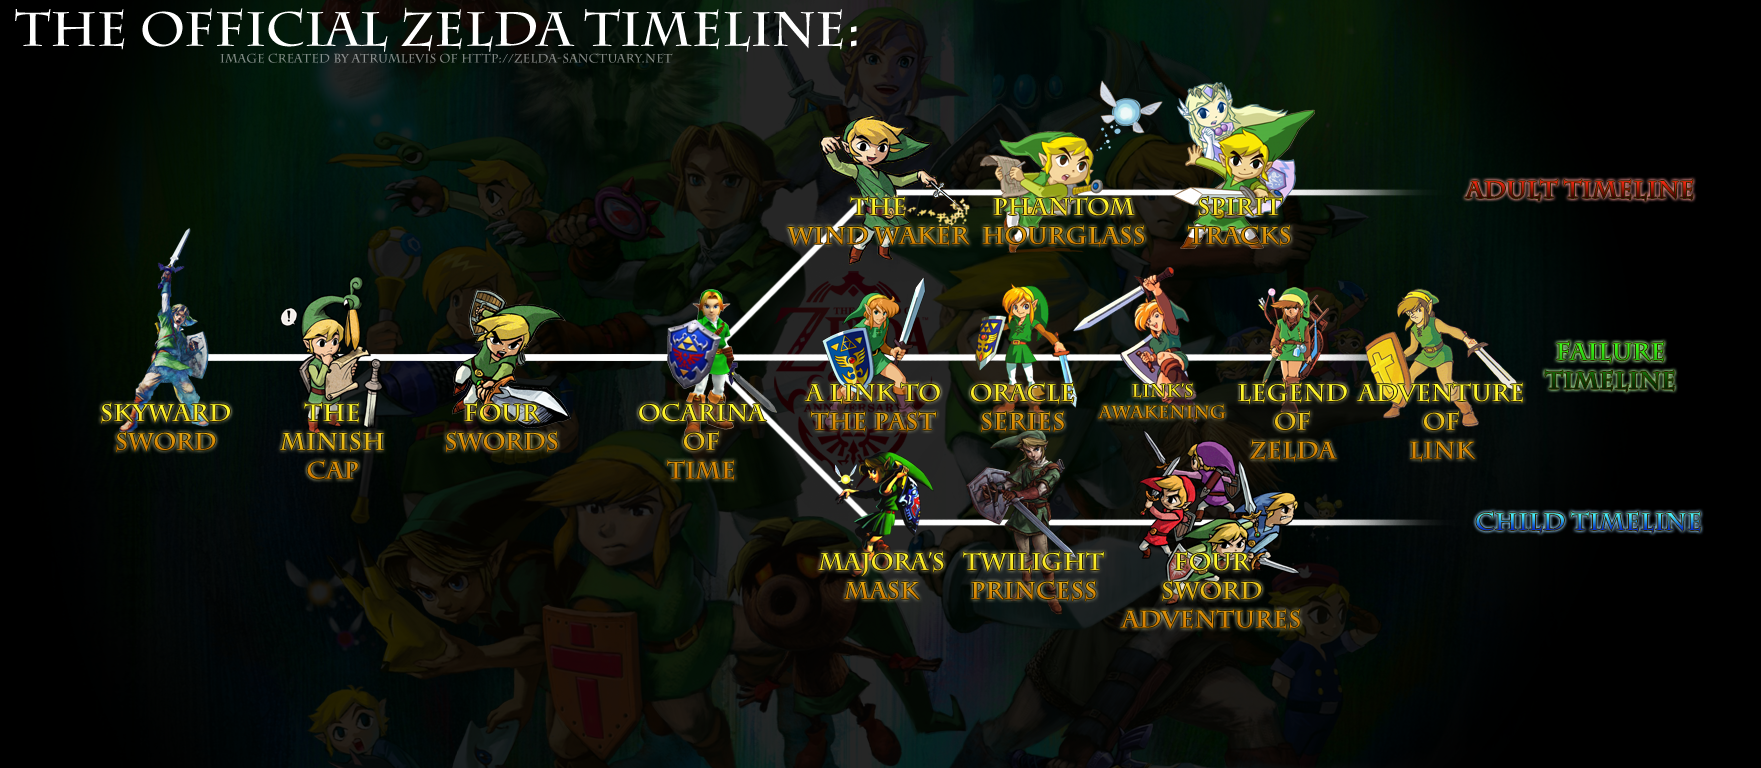 official zelda timeline fixed png 1761 768 zelda stuff